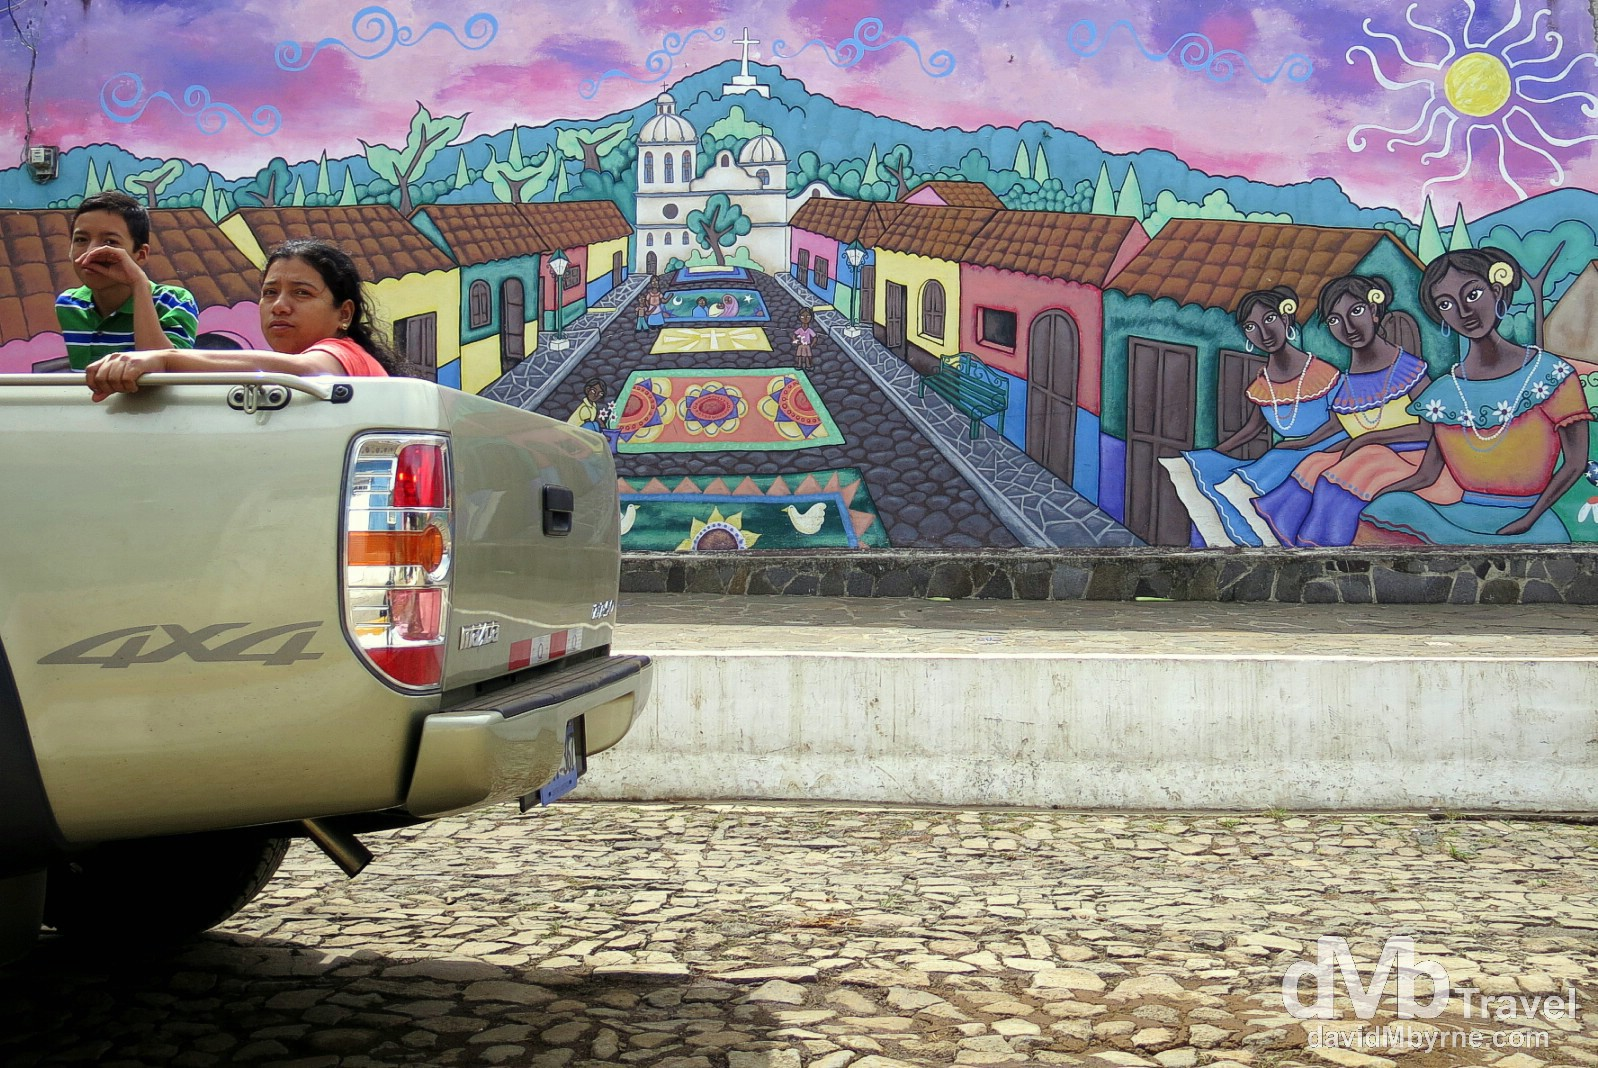 Murals on the streets of Ataco, western El Salvador. June 2nd 2013